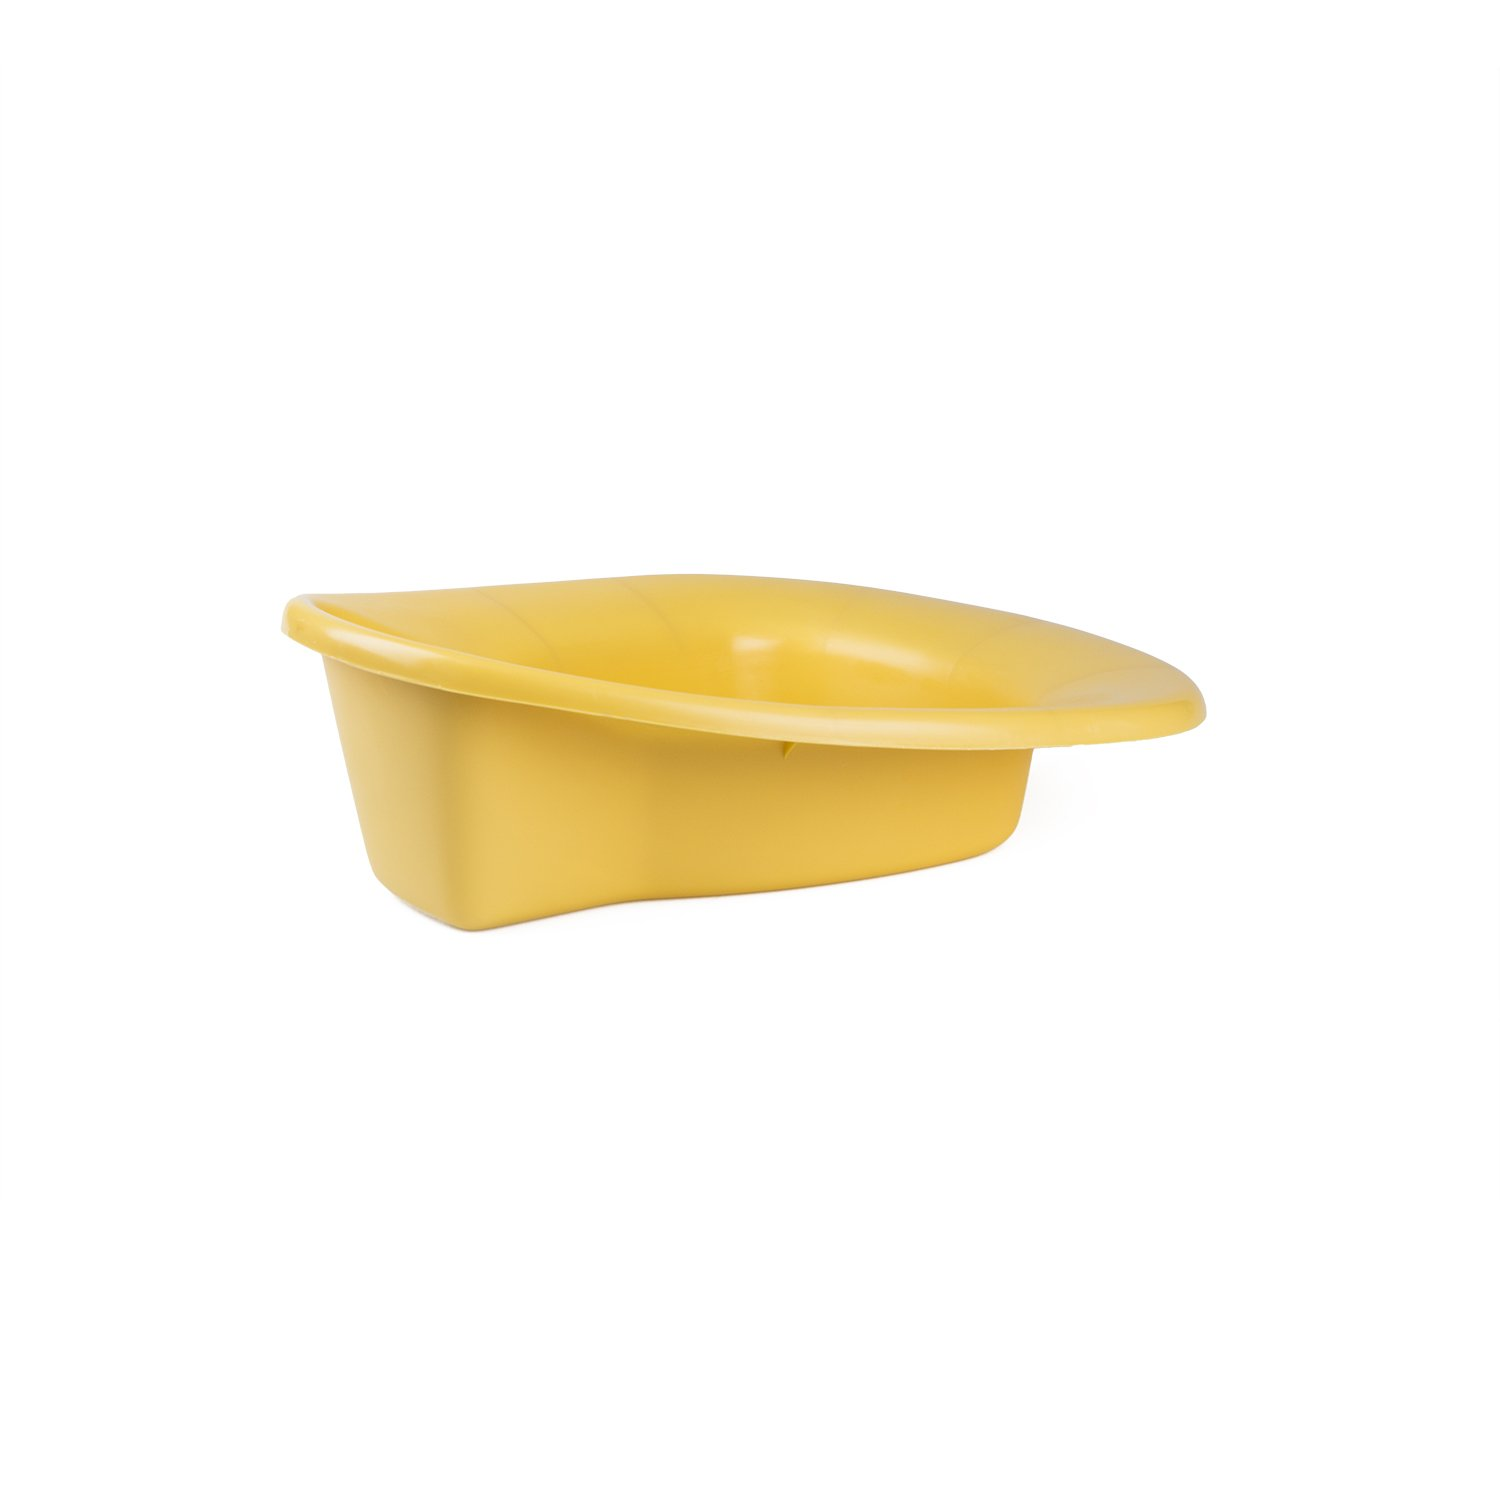 Medegen Medical Products H113-05 Bedpans, Commode, 2 quart Capacity, 15'' x 11.4'' x 4.6'' x 2.6'', Gold (Pack of 50)